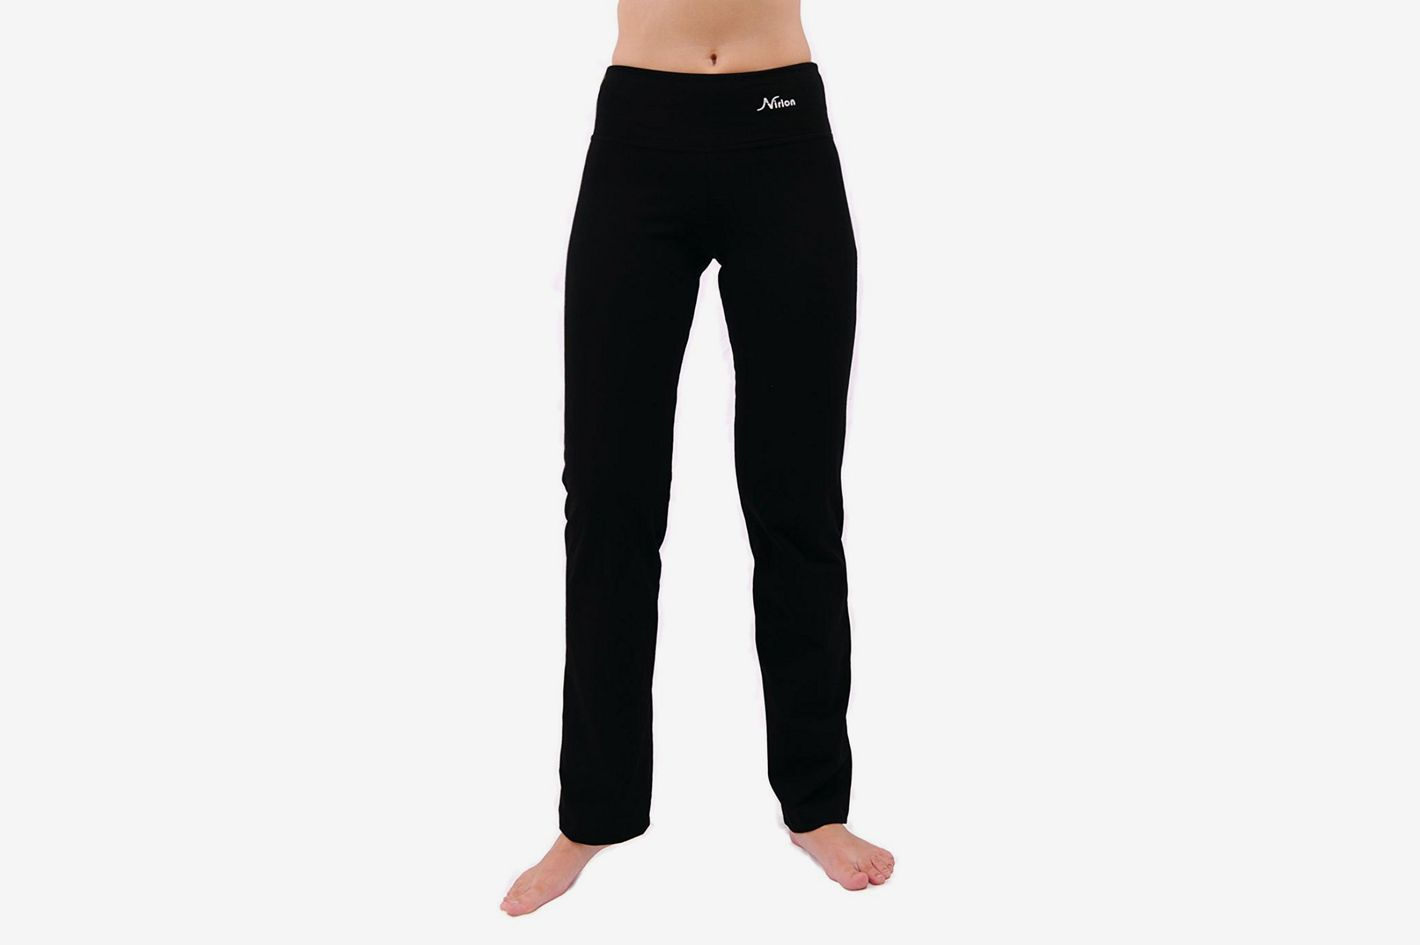 Yoga Pants for Women Black Leggings Straight Leg